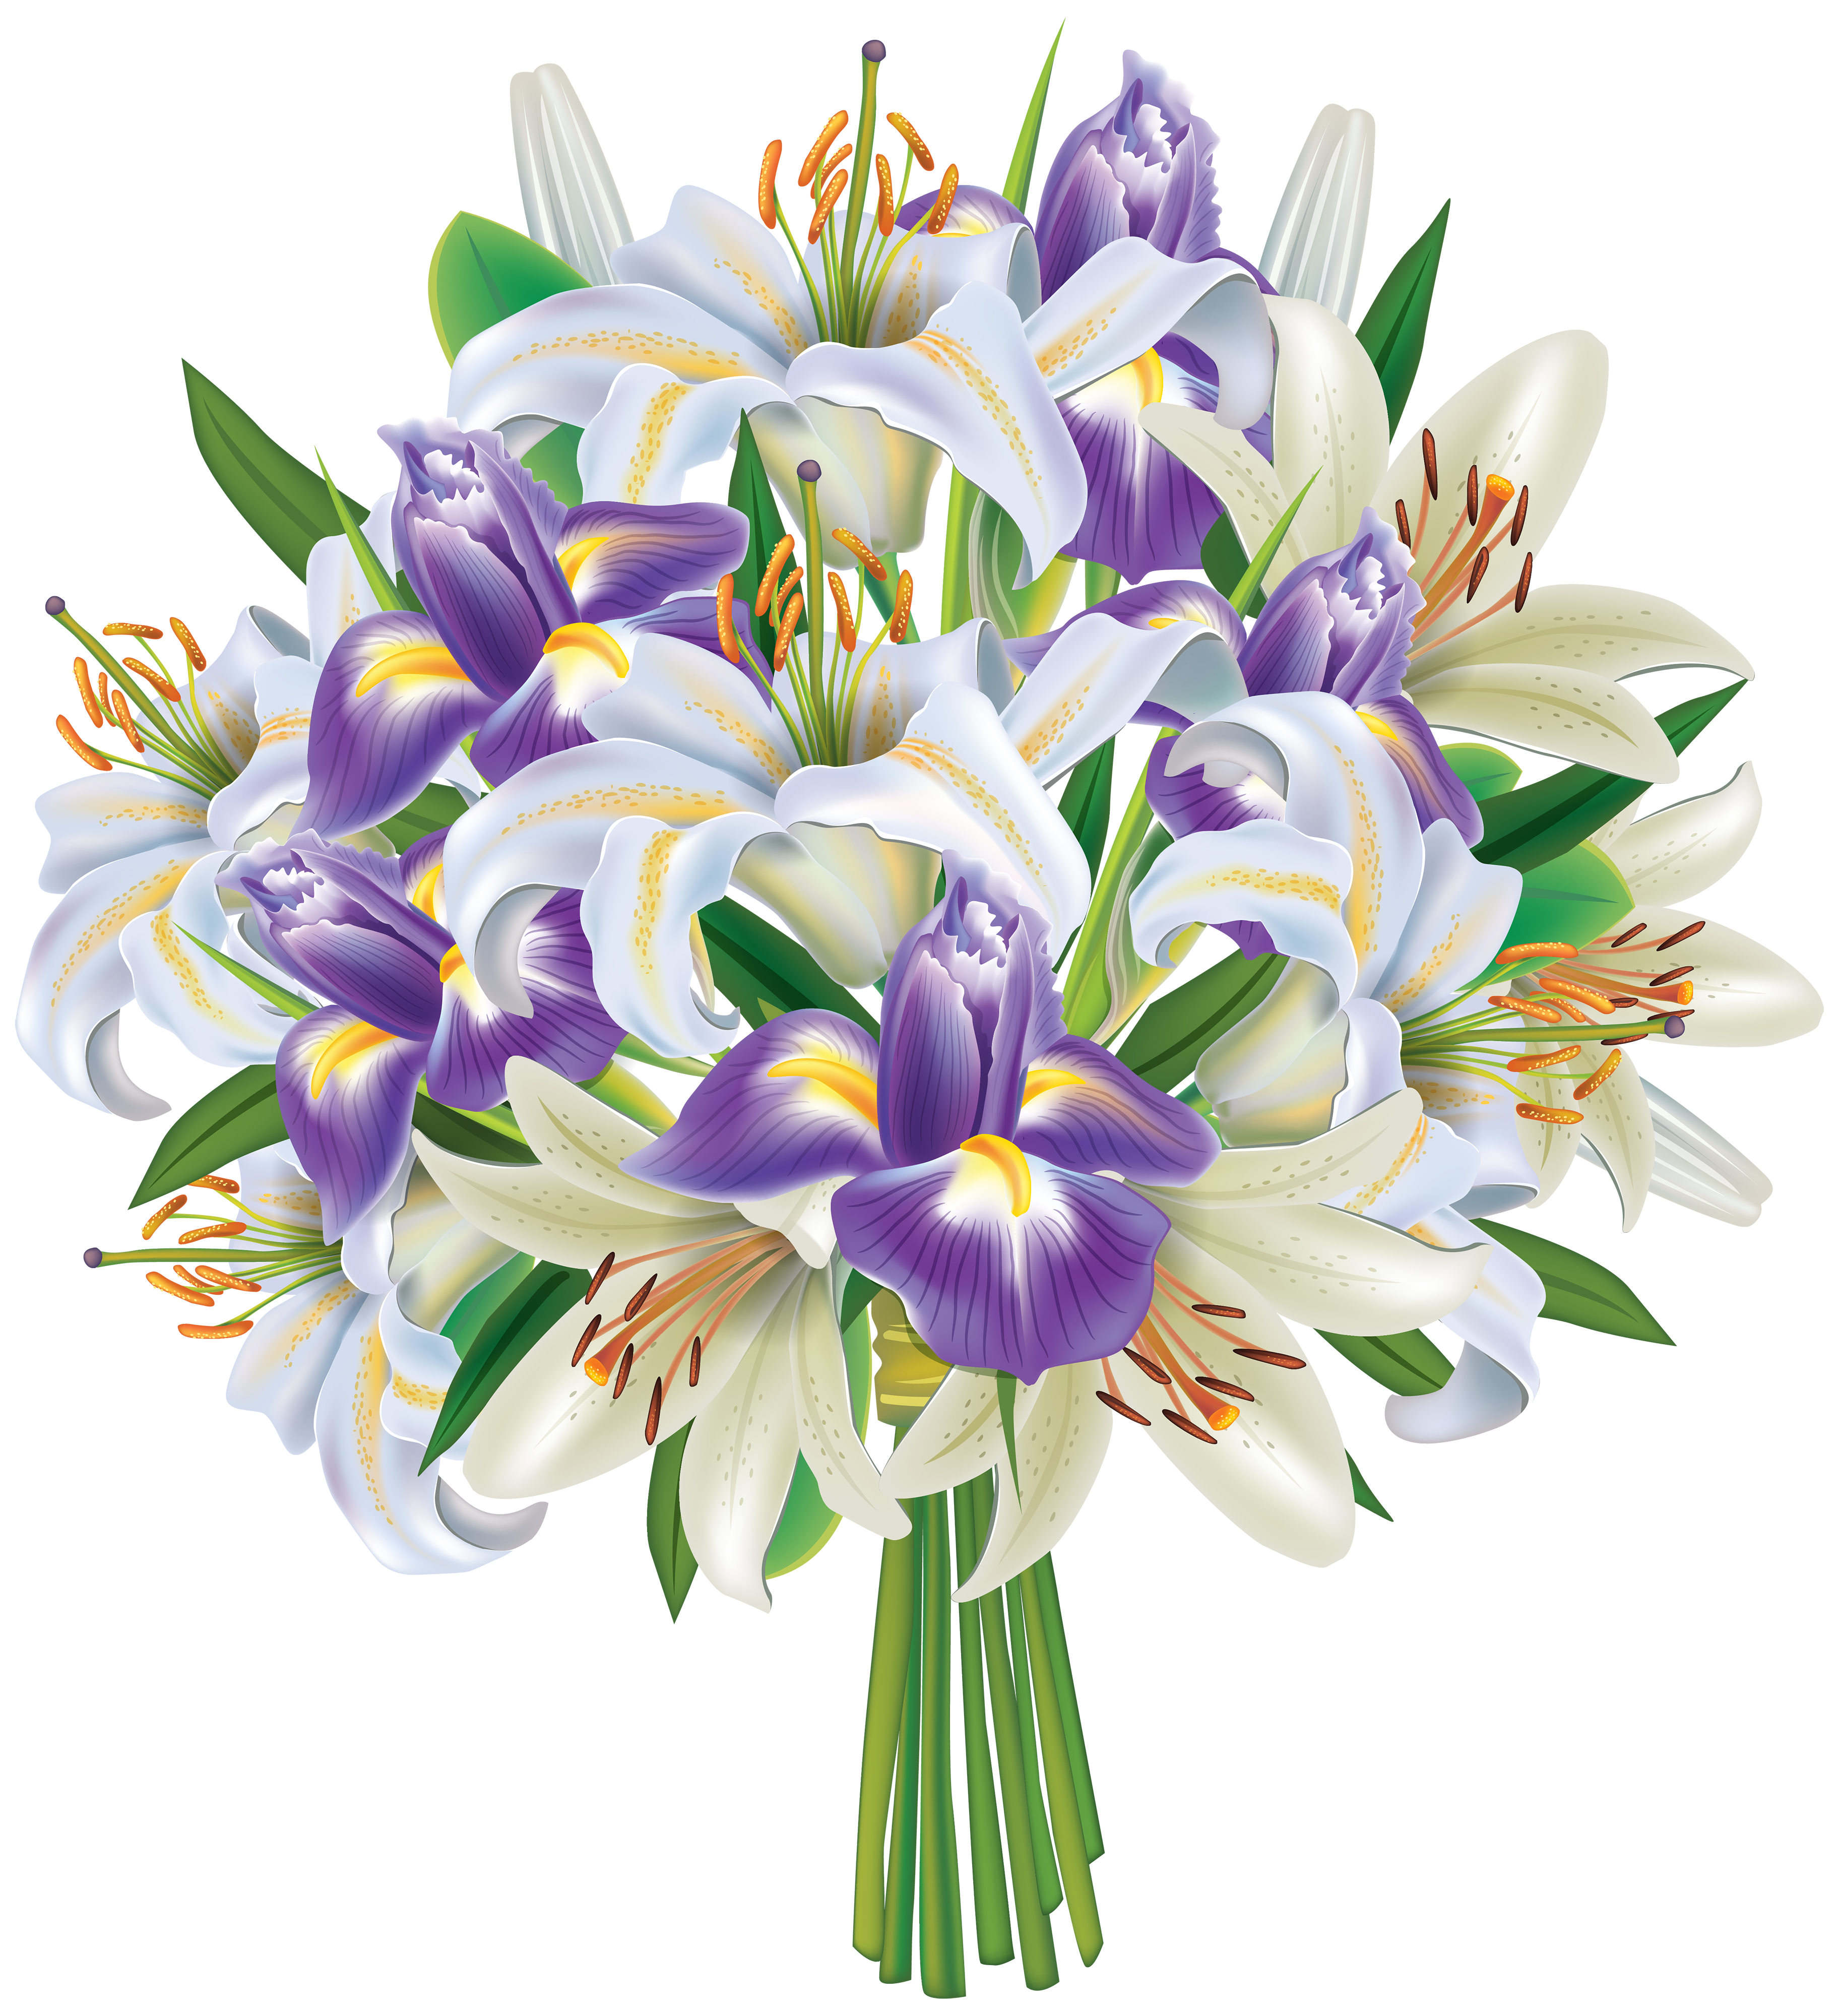 Elegant purple flower clipart vector download Purple Iris Flowers and Lilies Bouquet PNG Clipart Image | Gallery ... vector download